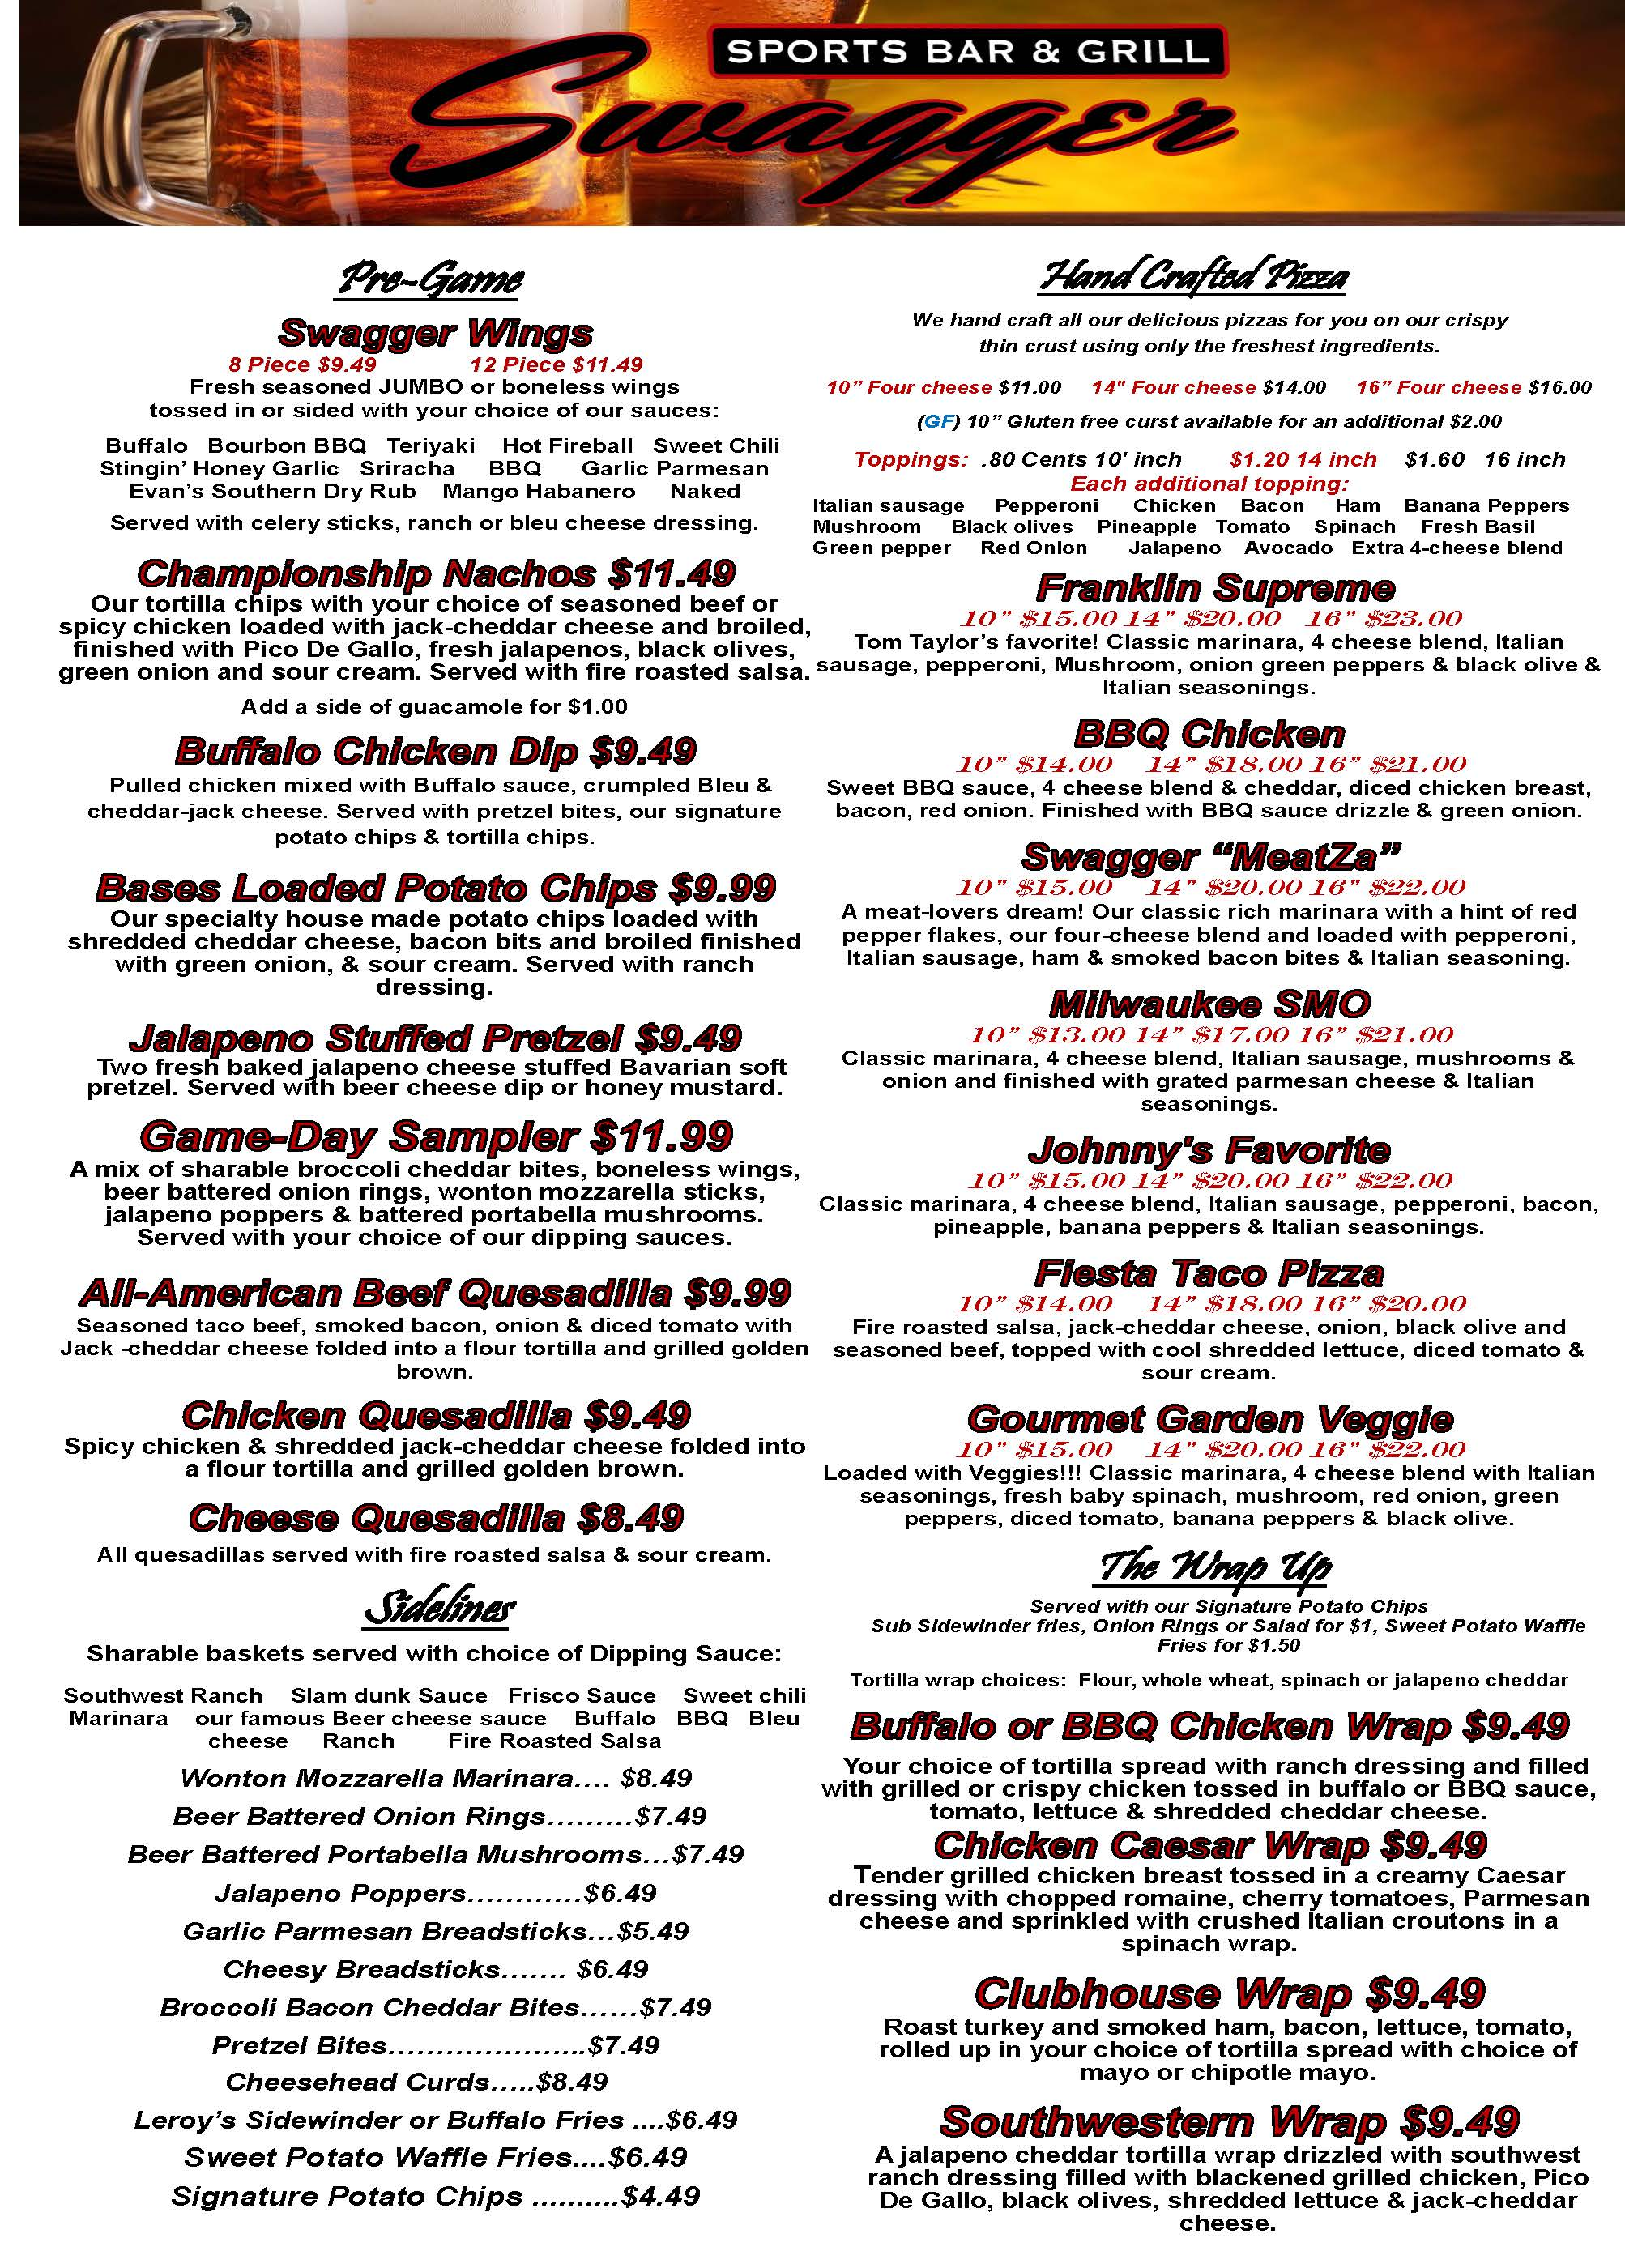 Root River Center Swagger Sports Bar Food Menu February 2015 Page 1